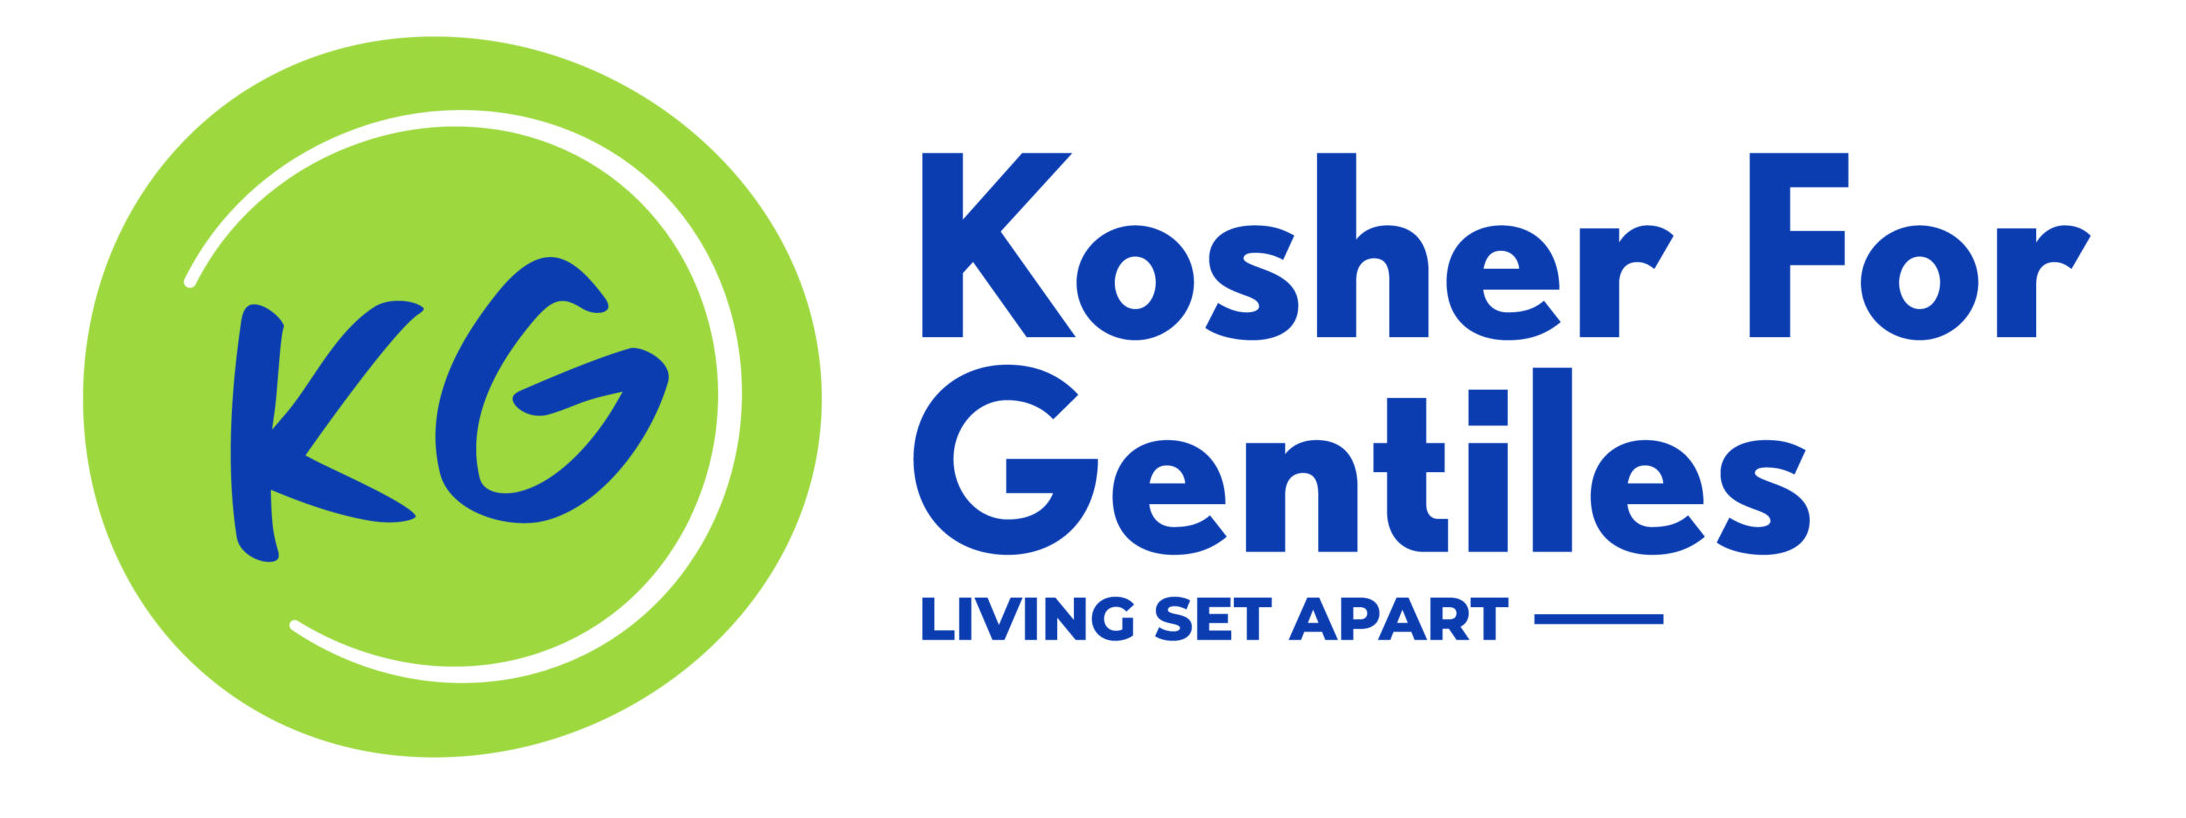 Kosher for Gentiles